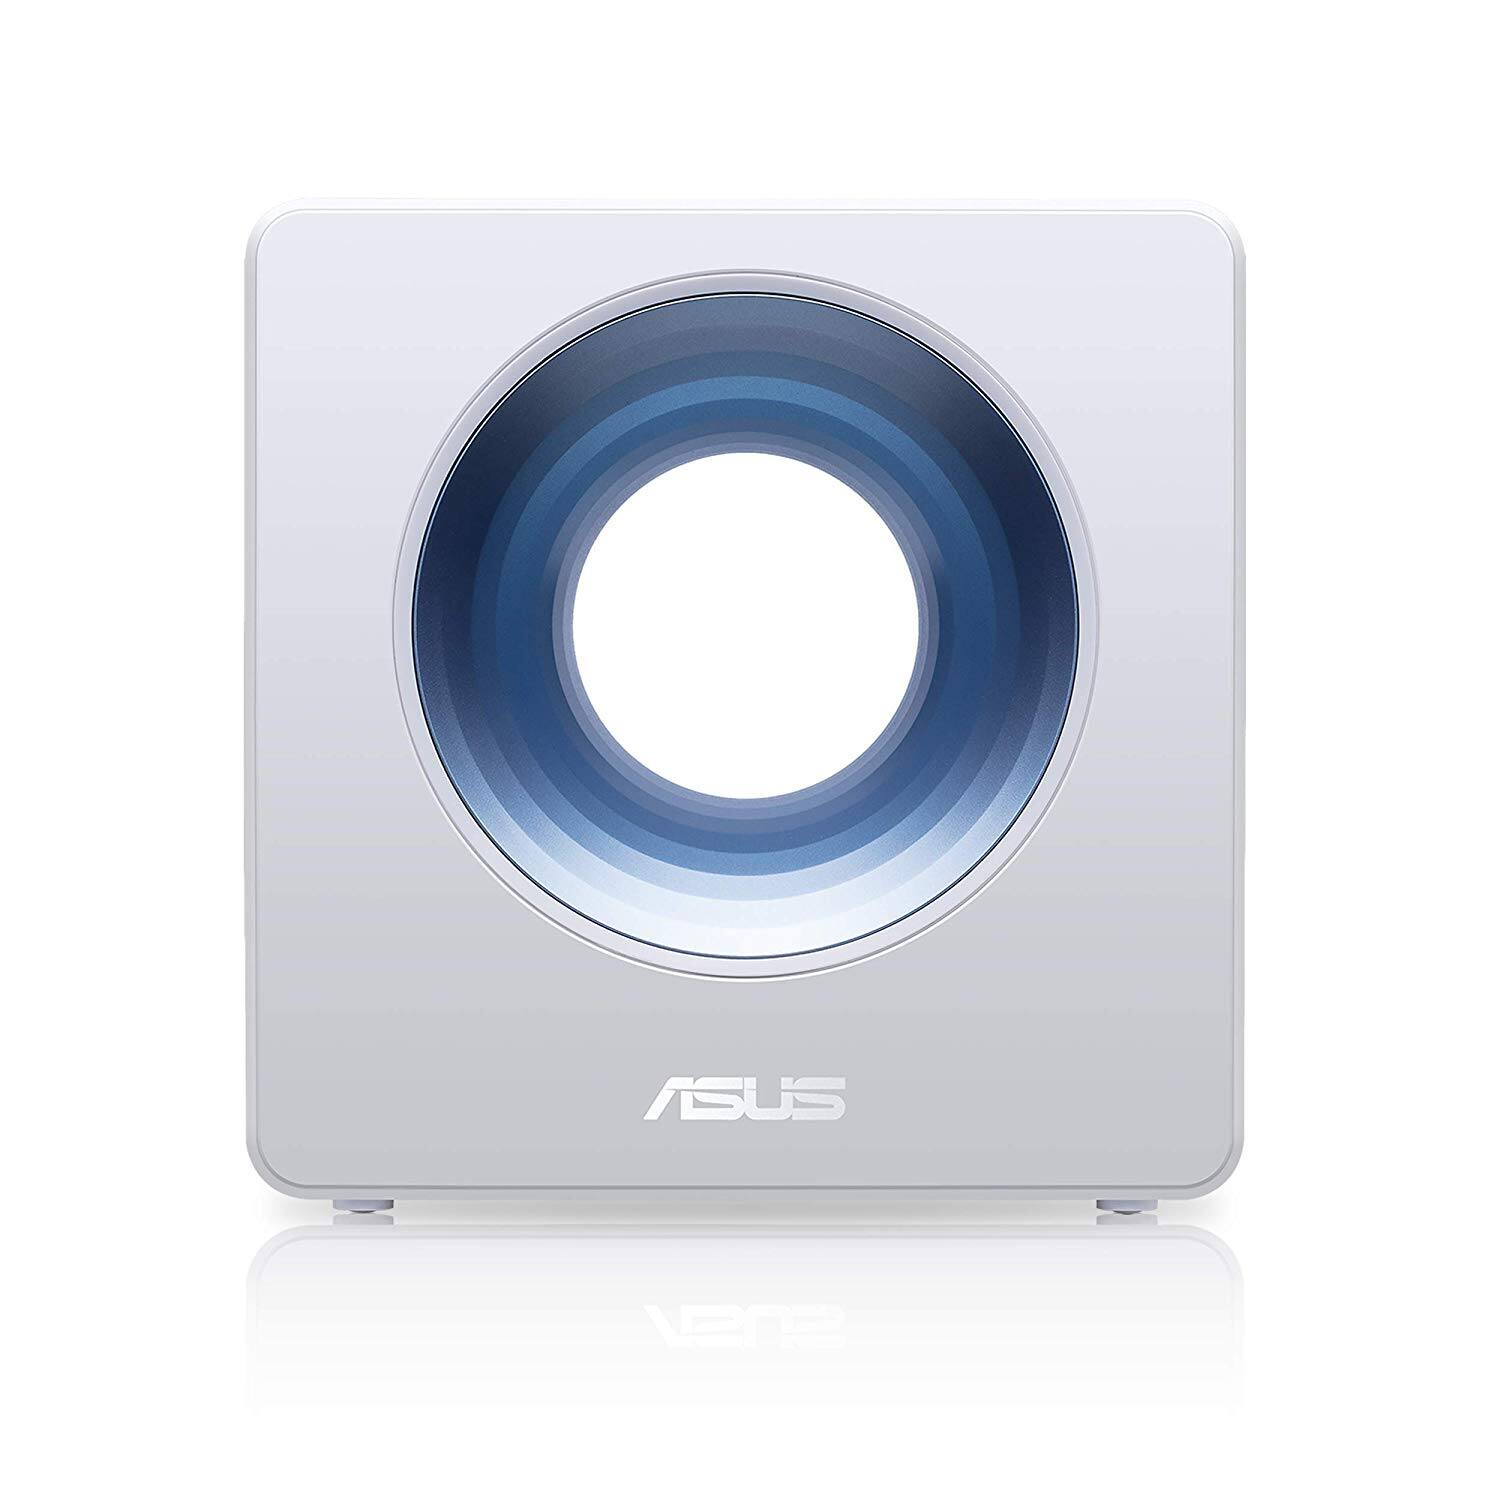 Asus Blue Cave AC2600 Dual-Band Wireless Router for Smart Homes, Featuring Intel WiFi Technology and AiProtection Network securi [AC 2600] $89.99